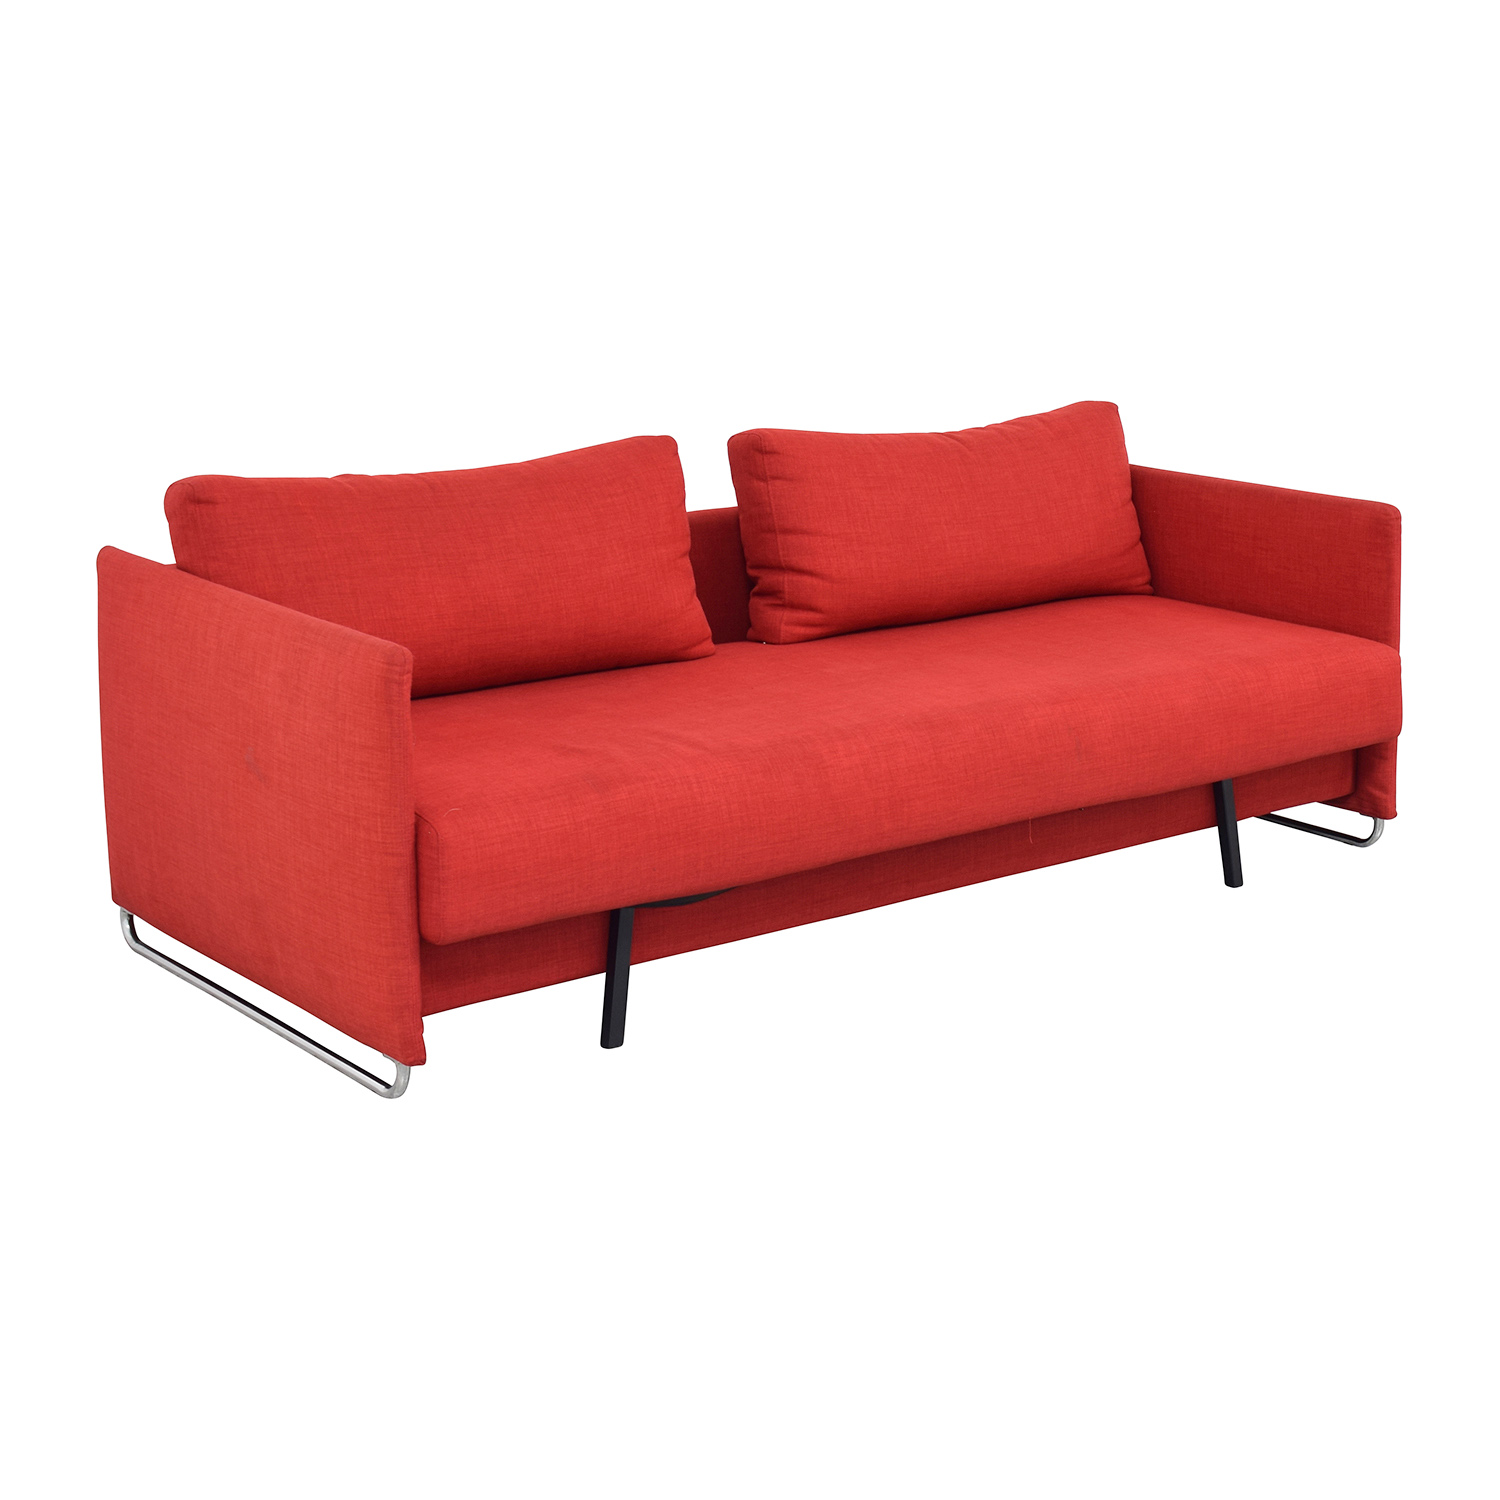 cb2 sectional sofa bed king podcast podbay red sleeper sofas as mart for on